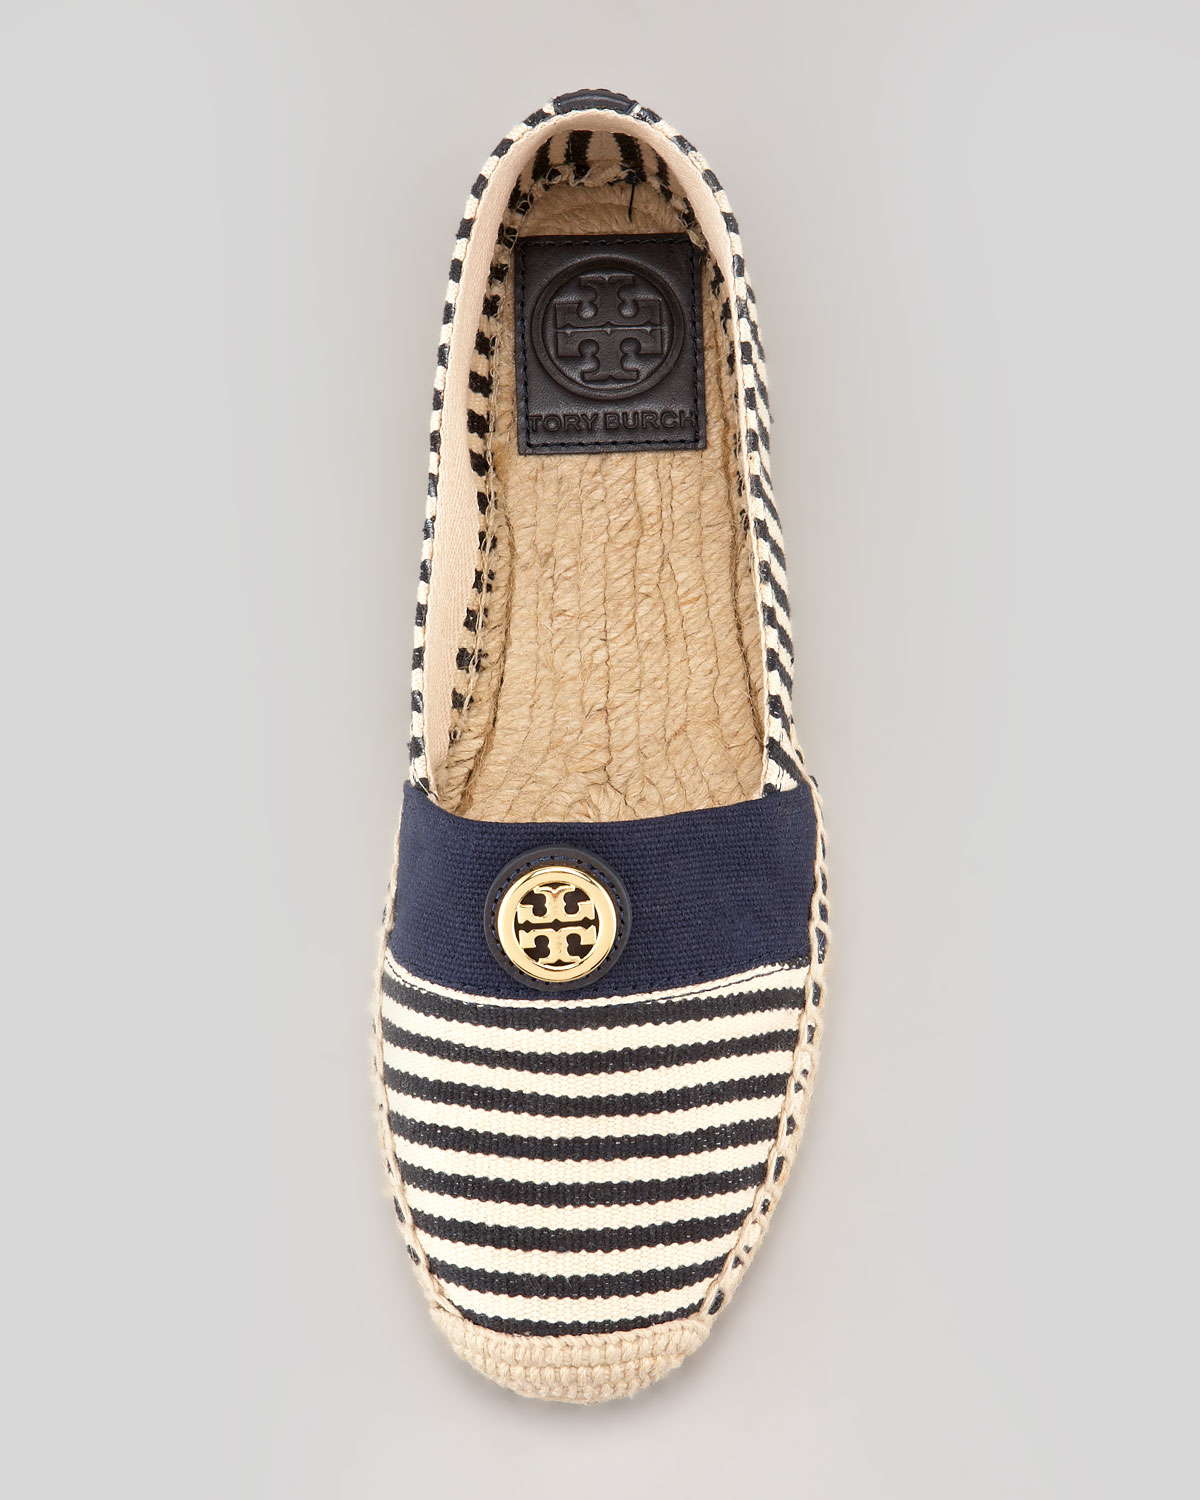 965de792c76 Lyst - Tory Burch Beacher Canvas Logo Espadrille Flat in Natural